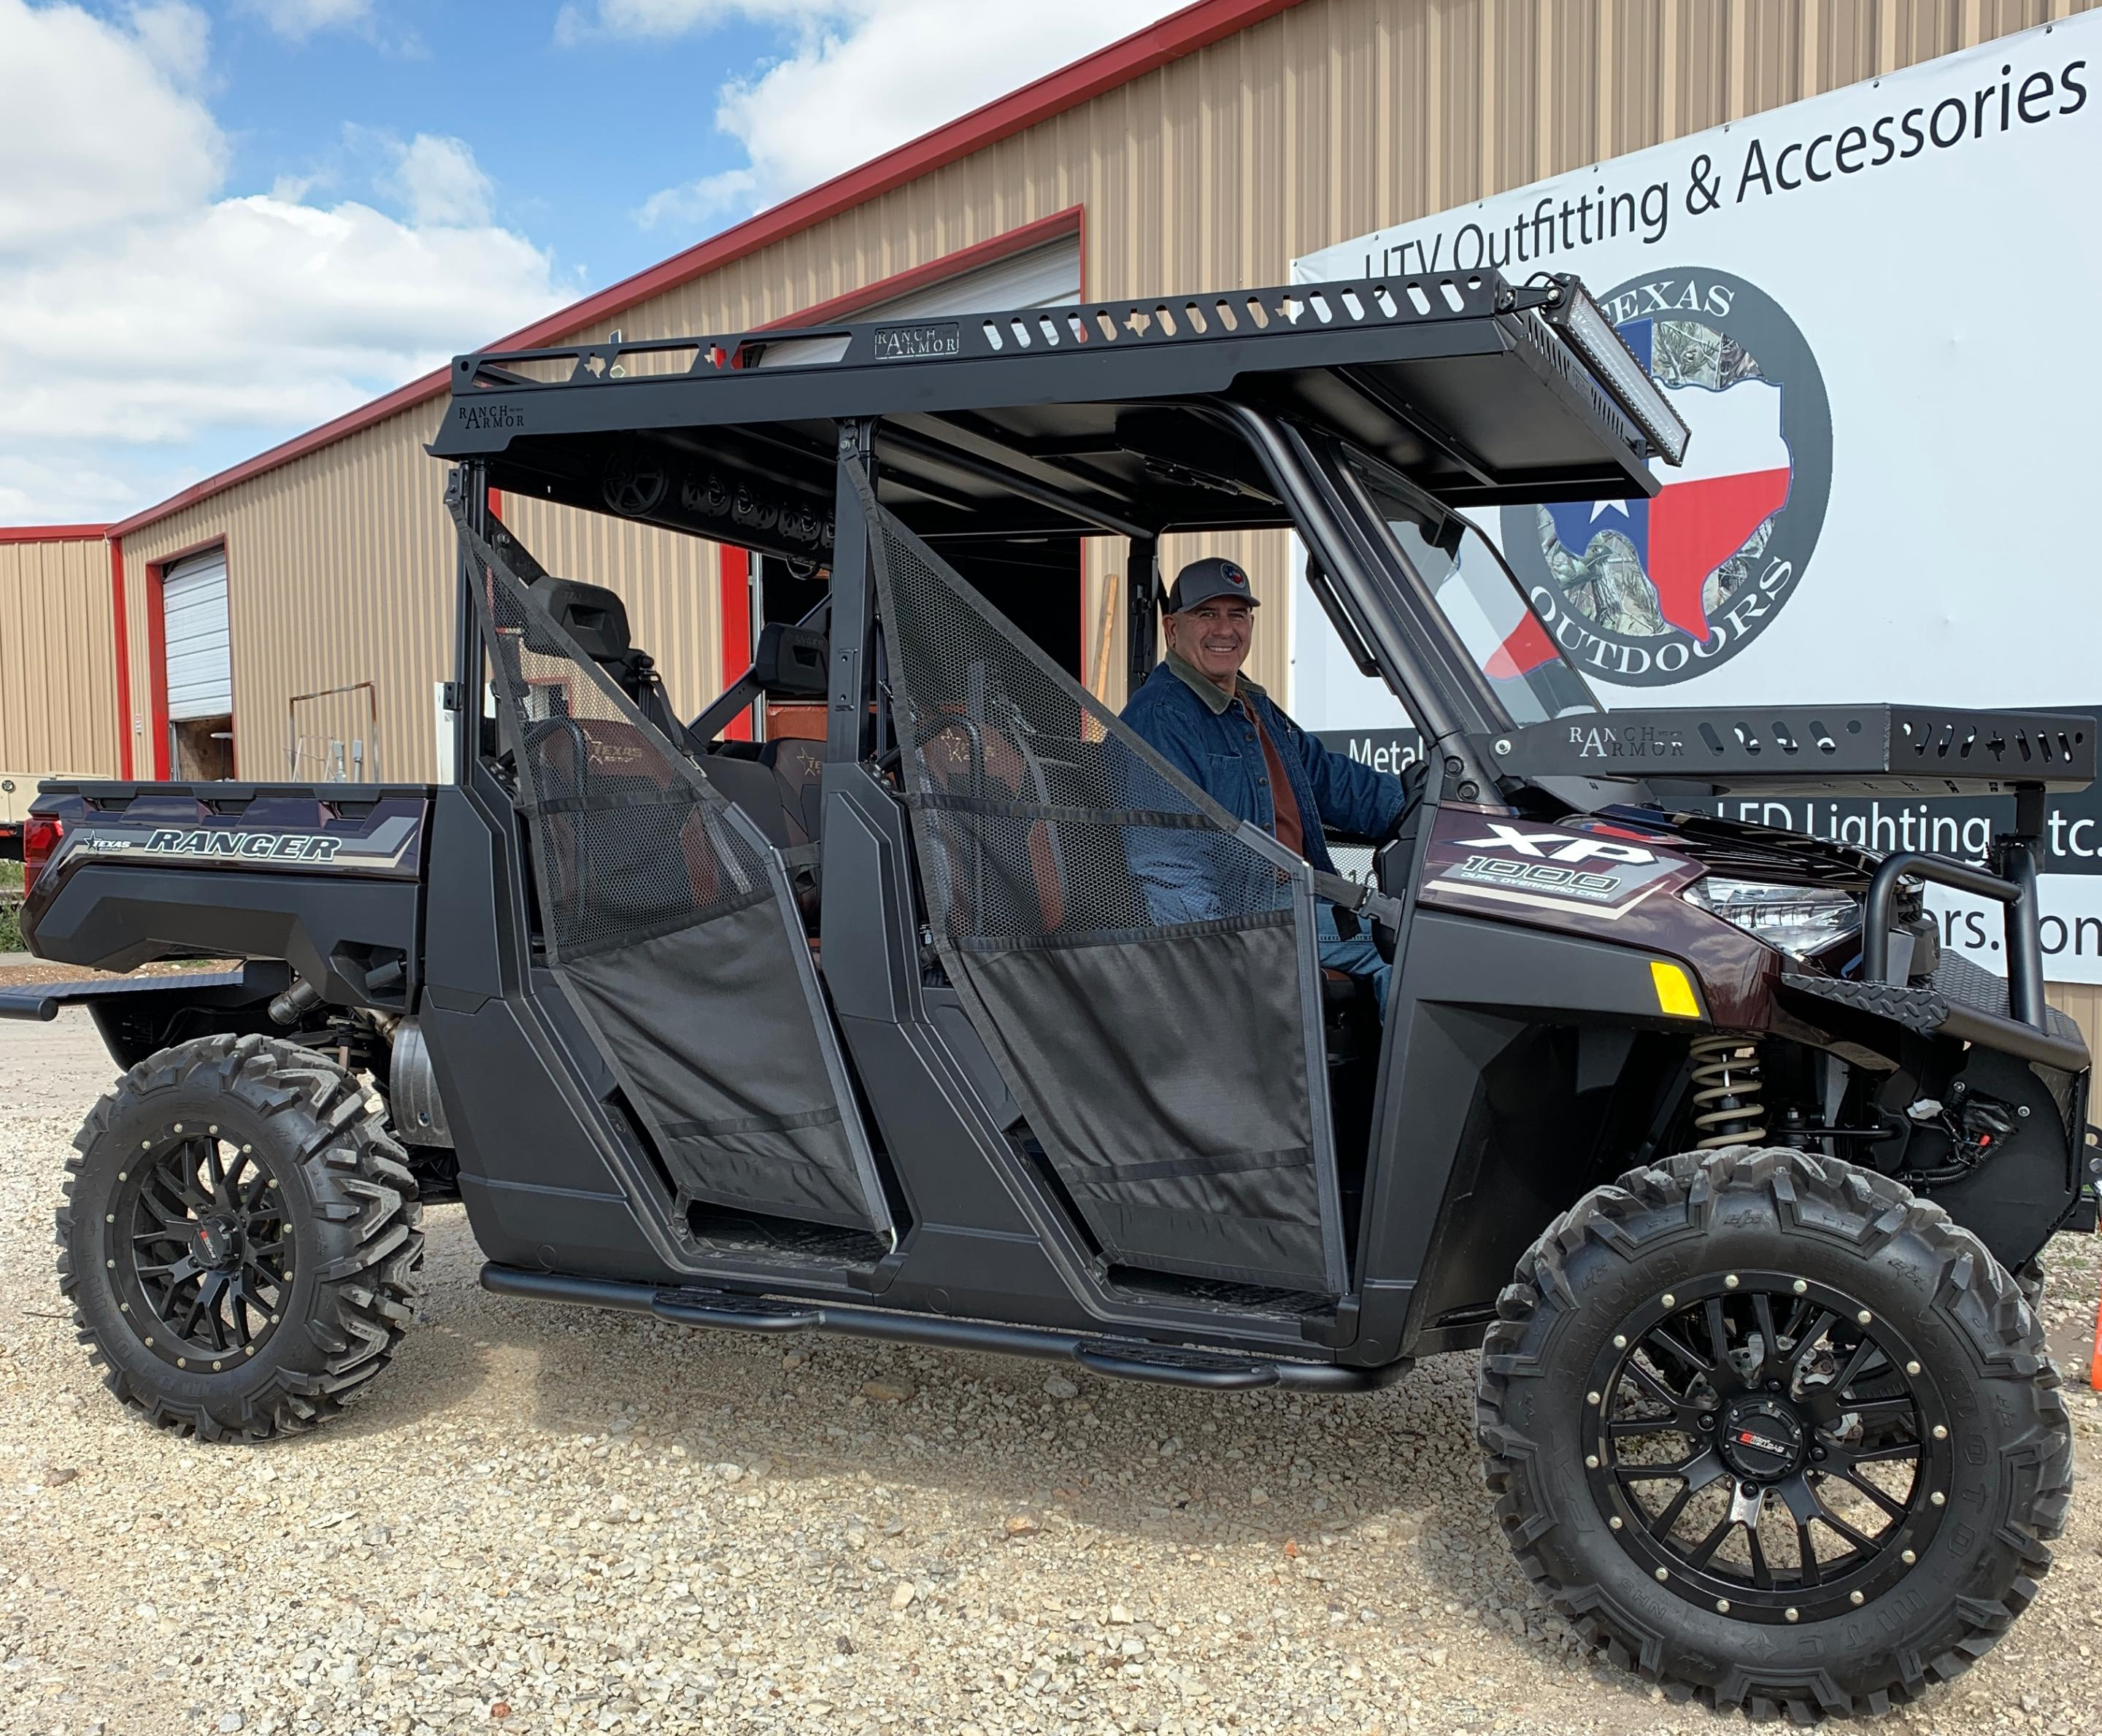 2020-polaris-ranger-texas-edition-1000-crew-customer-photo-with-ranch-armor-metal-roof-bumpers-and-side-steps.jpg